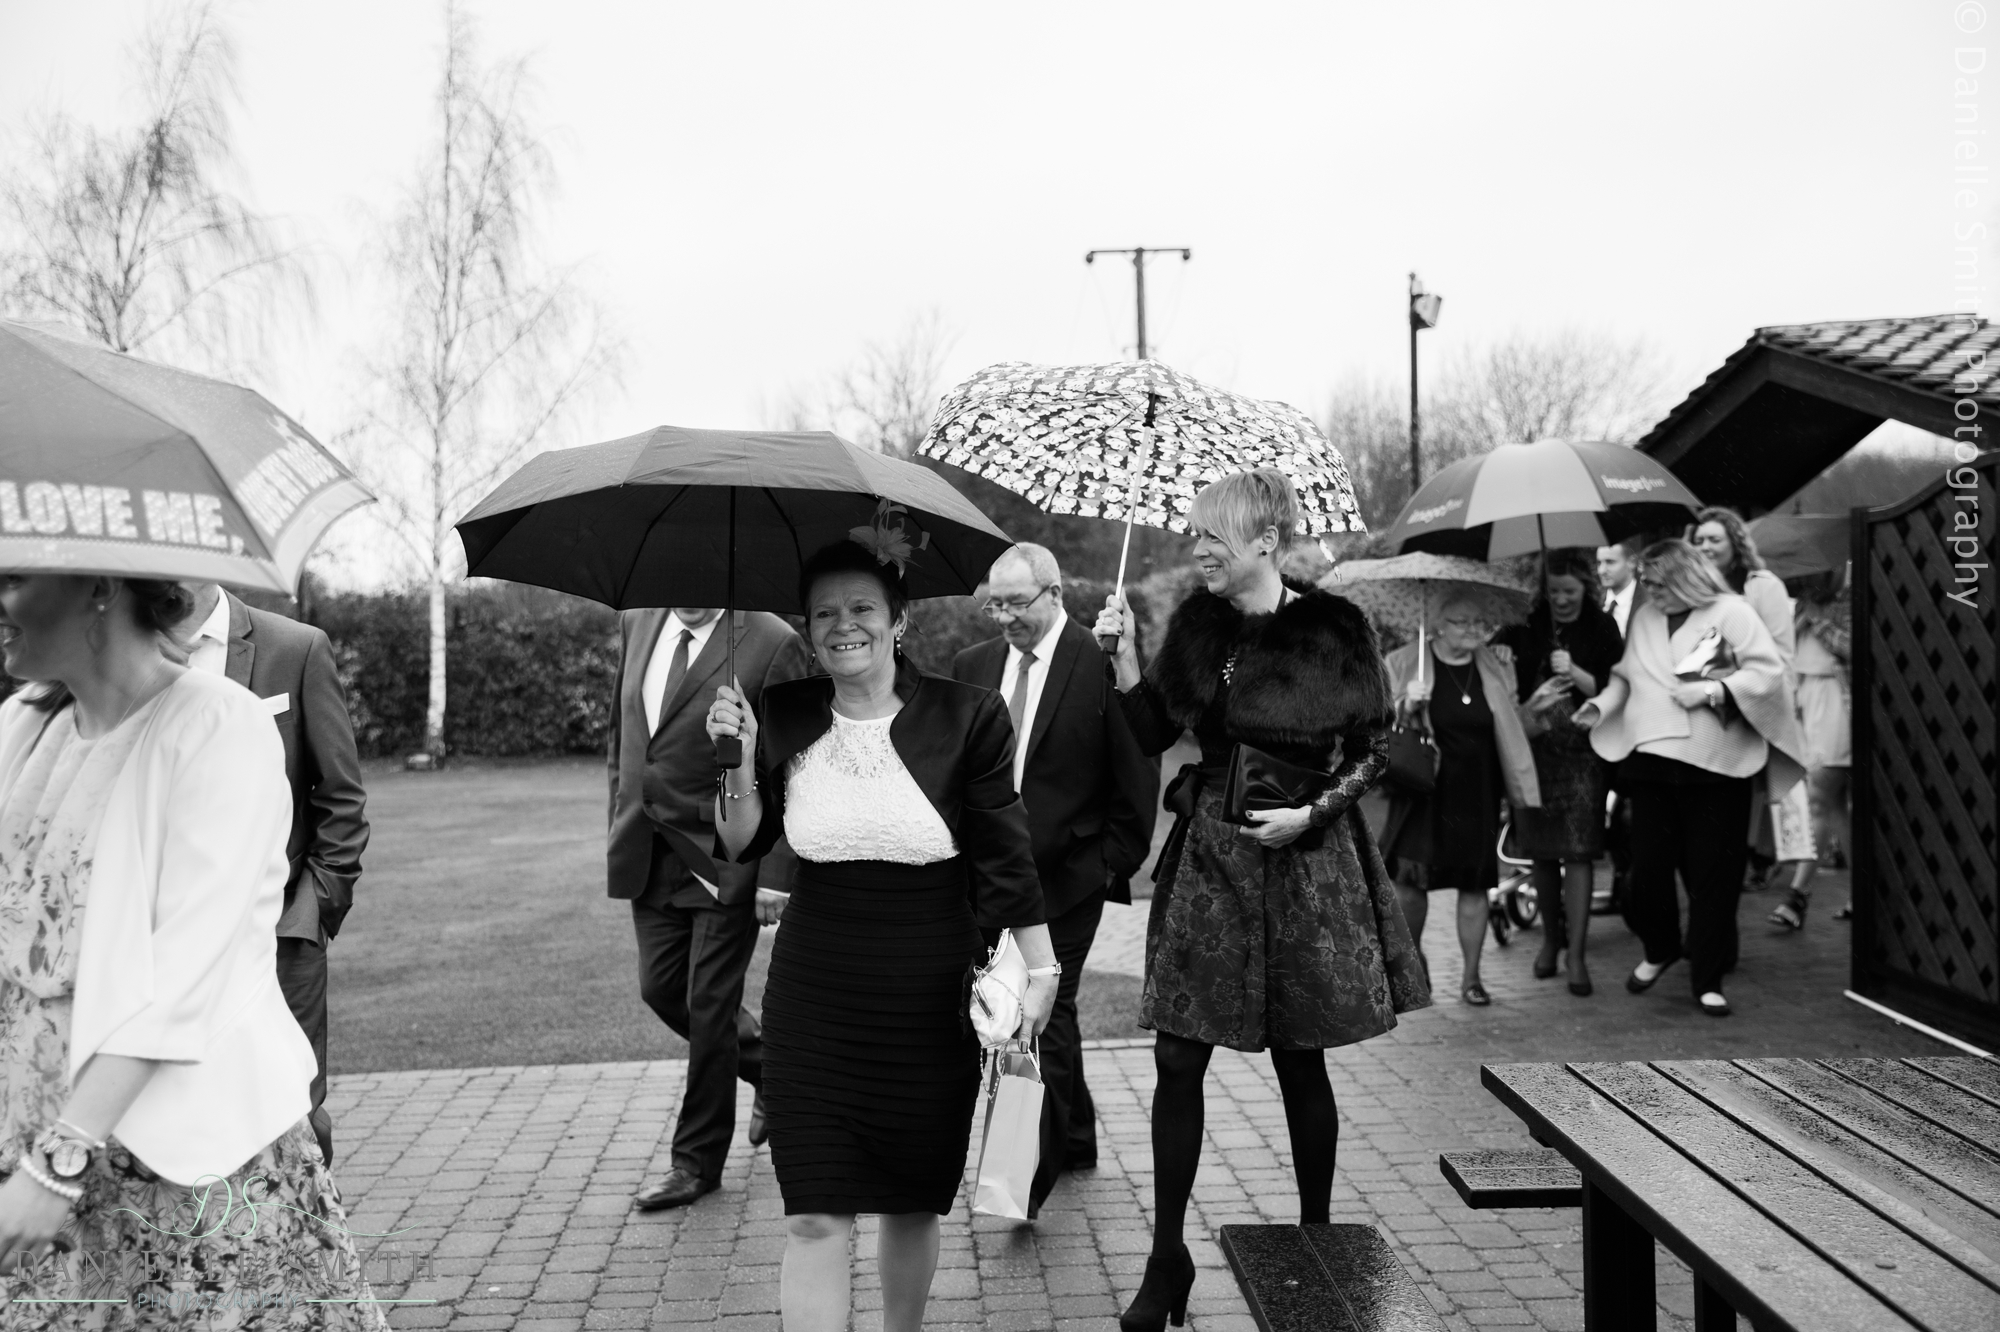 wedding guests arriving in rain with umbrellas